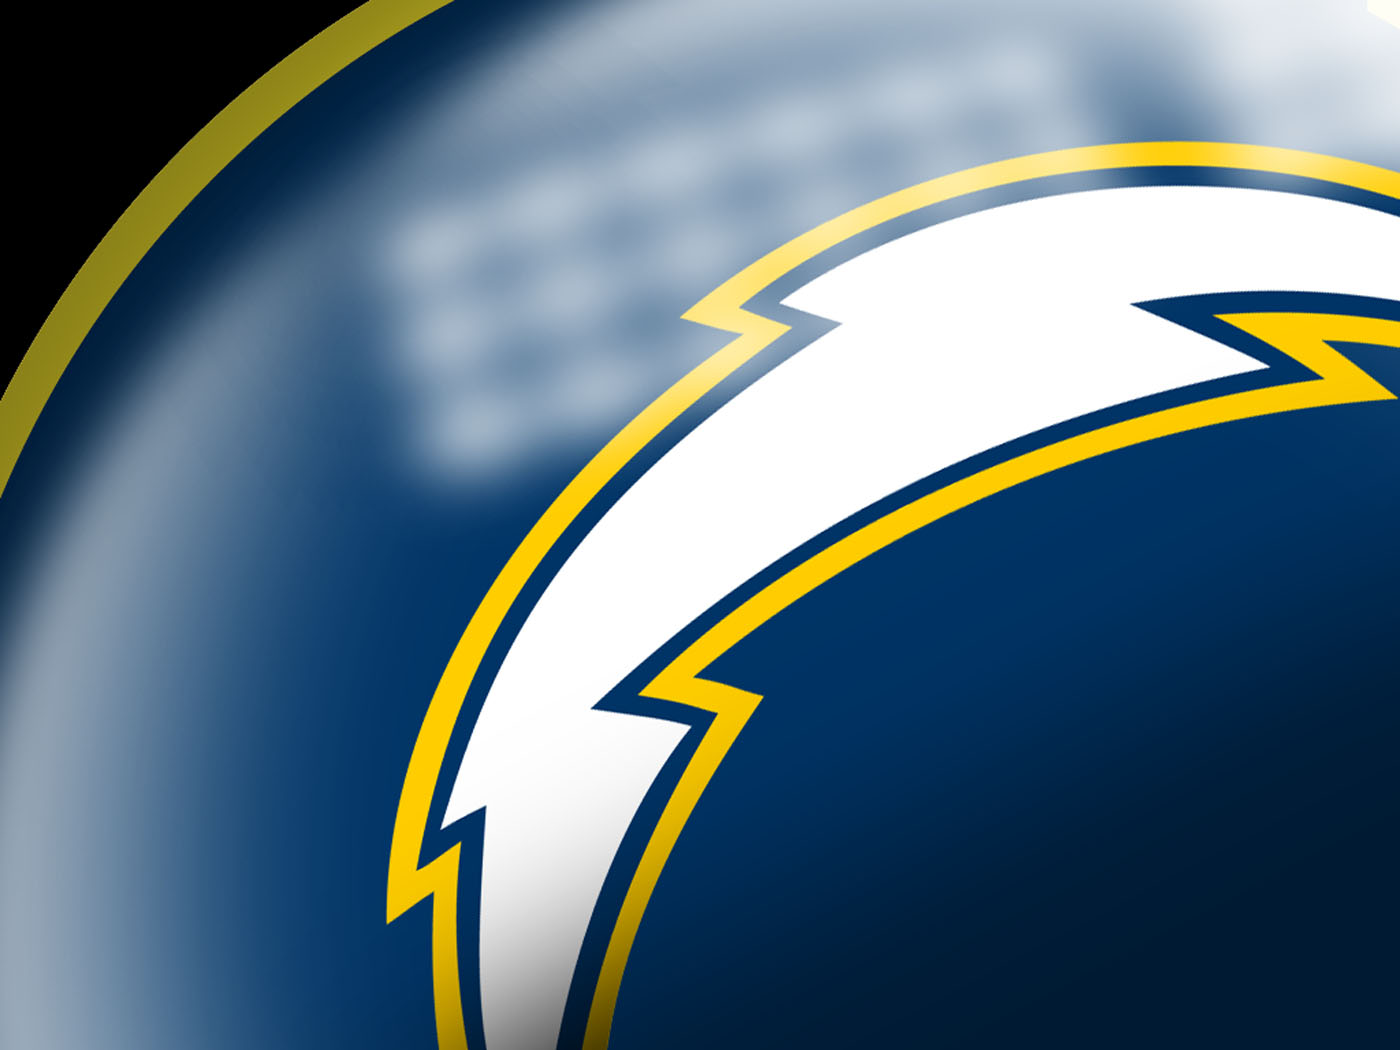 Free San Diego Chargers Wallpaper - WallpaperSafari Qualcomm Stadium Chargers Wallpaper